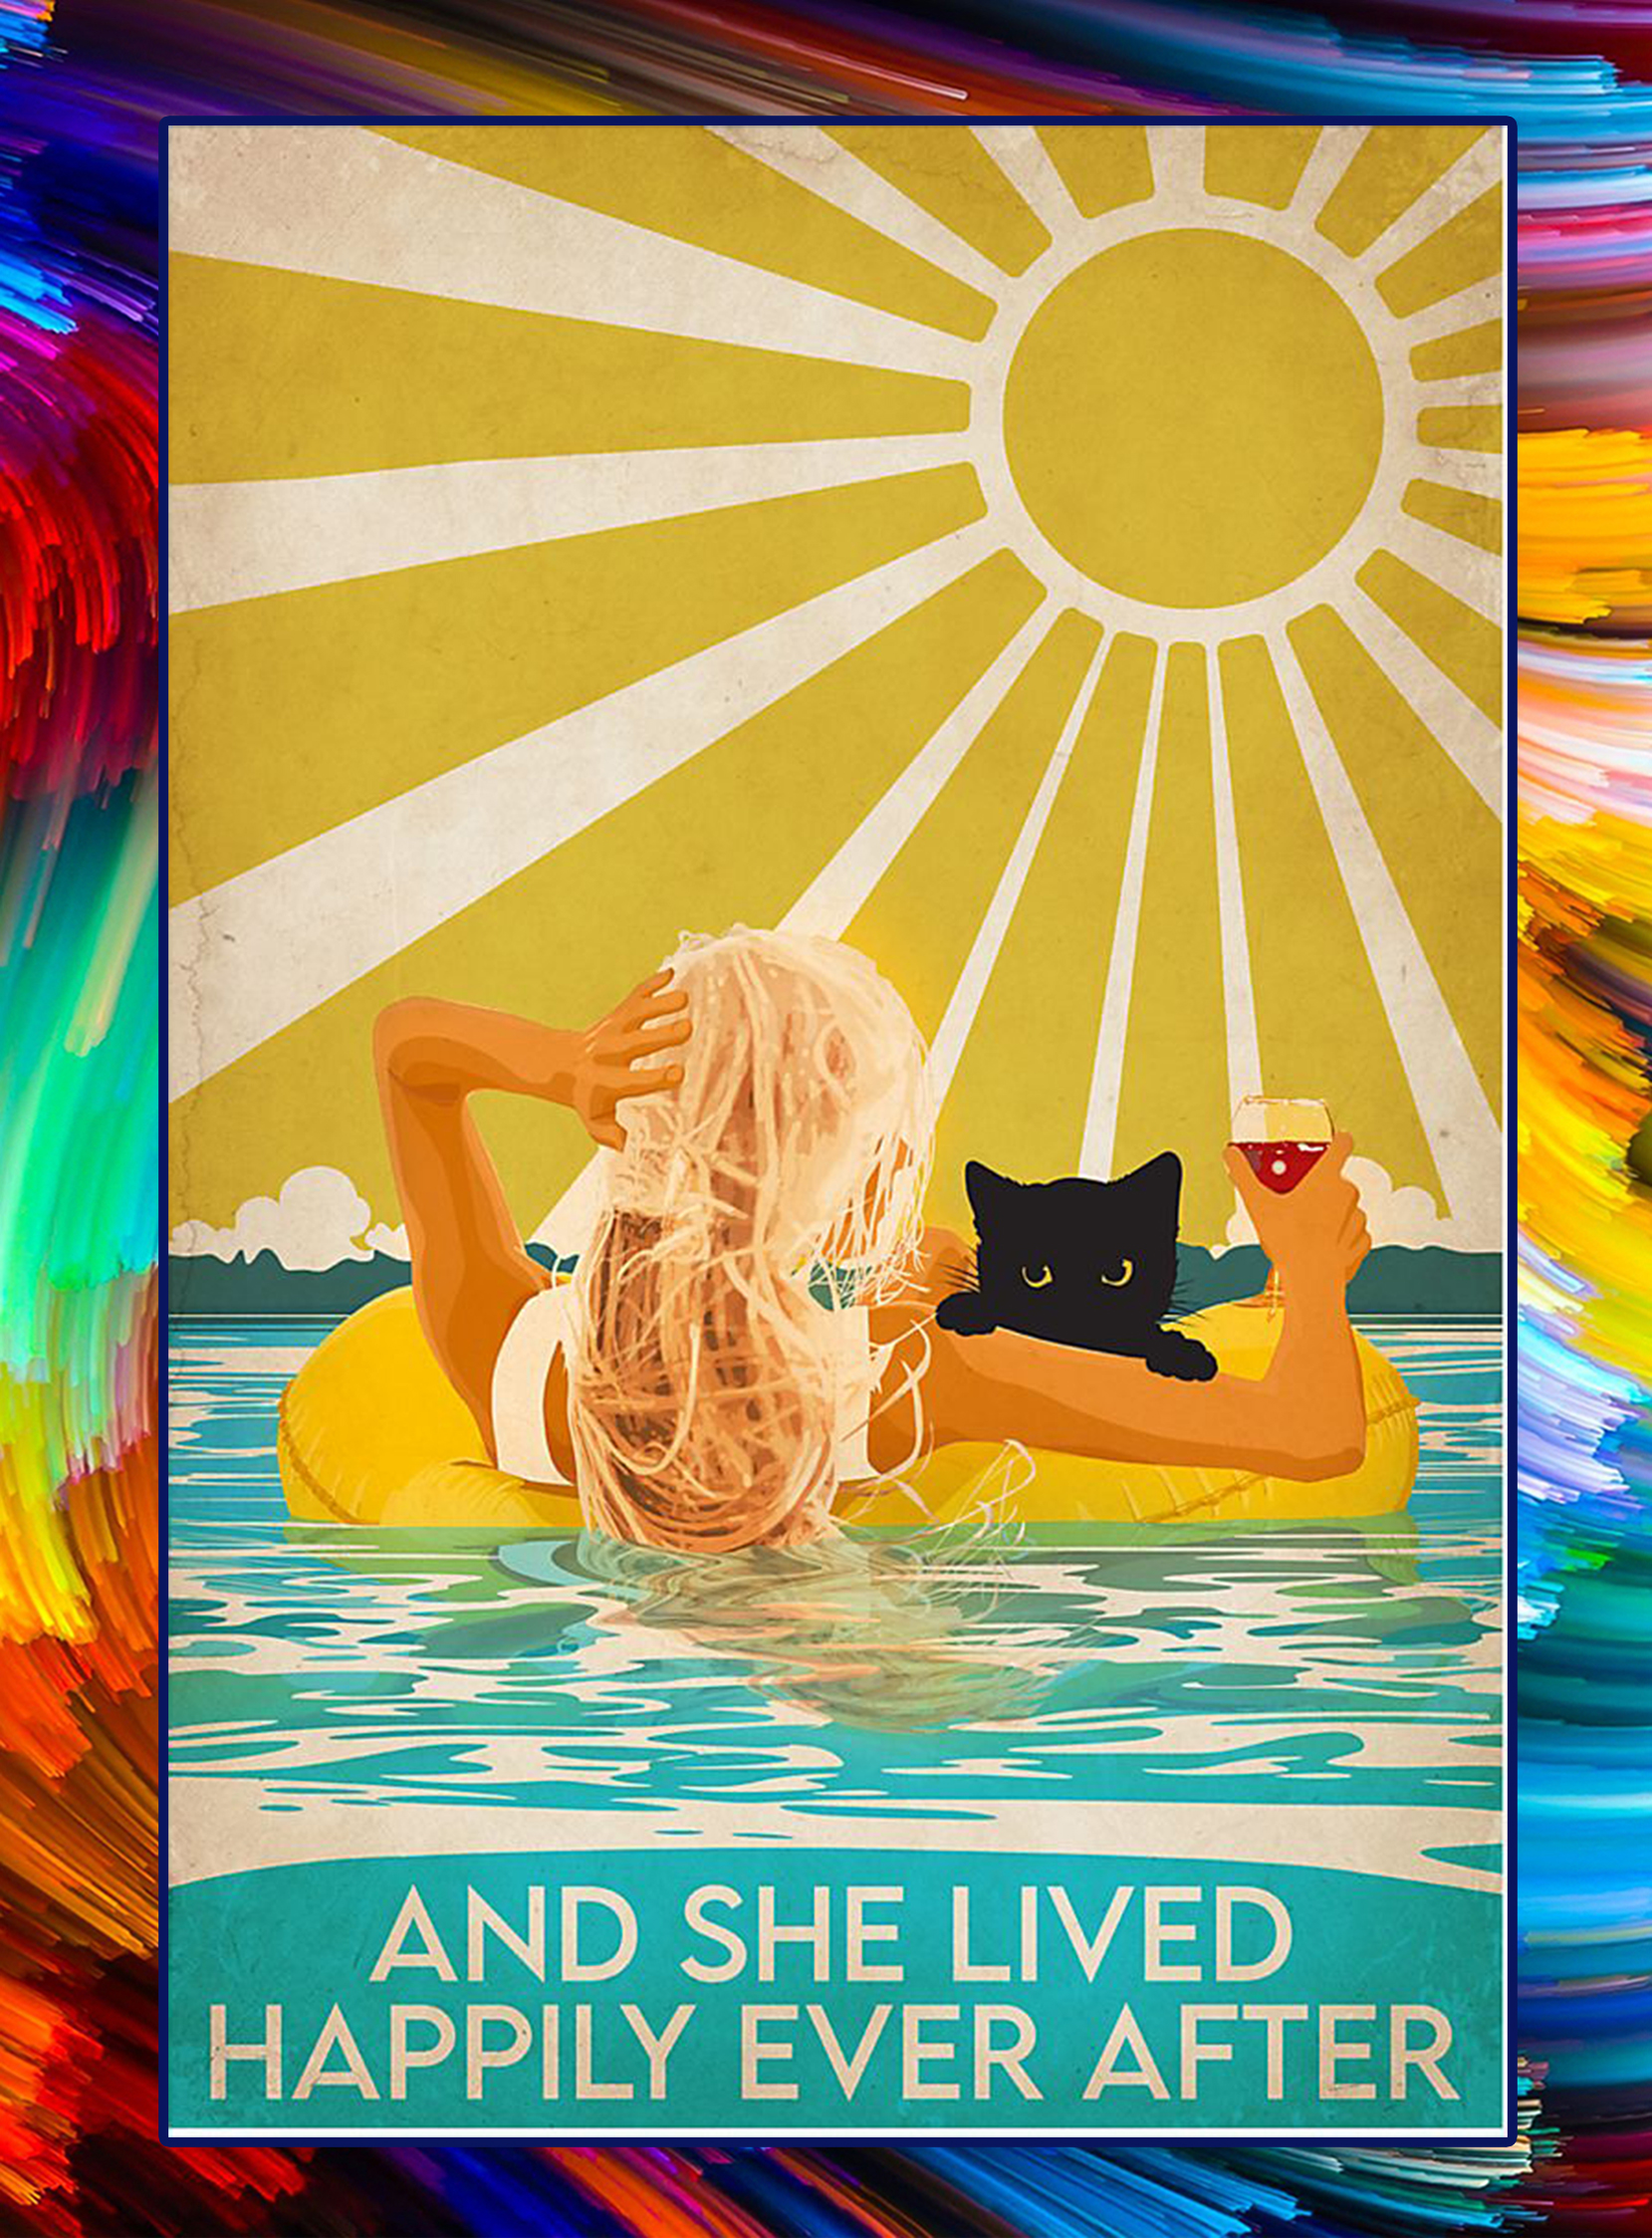 SWIMMING And she lived happily ever after poster - A1